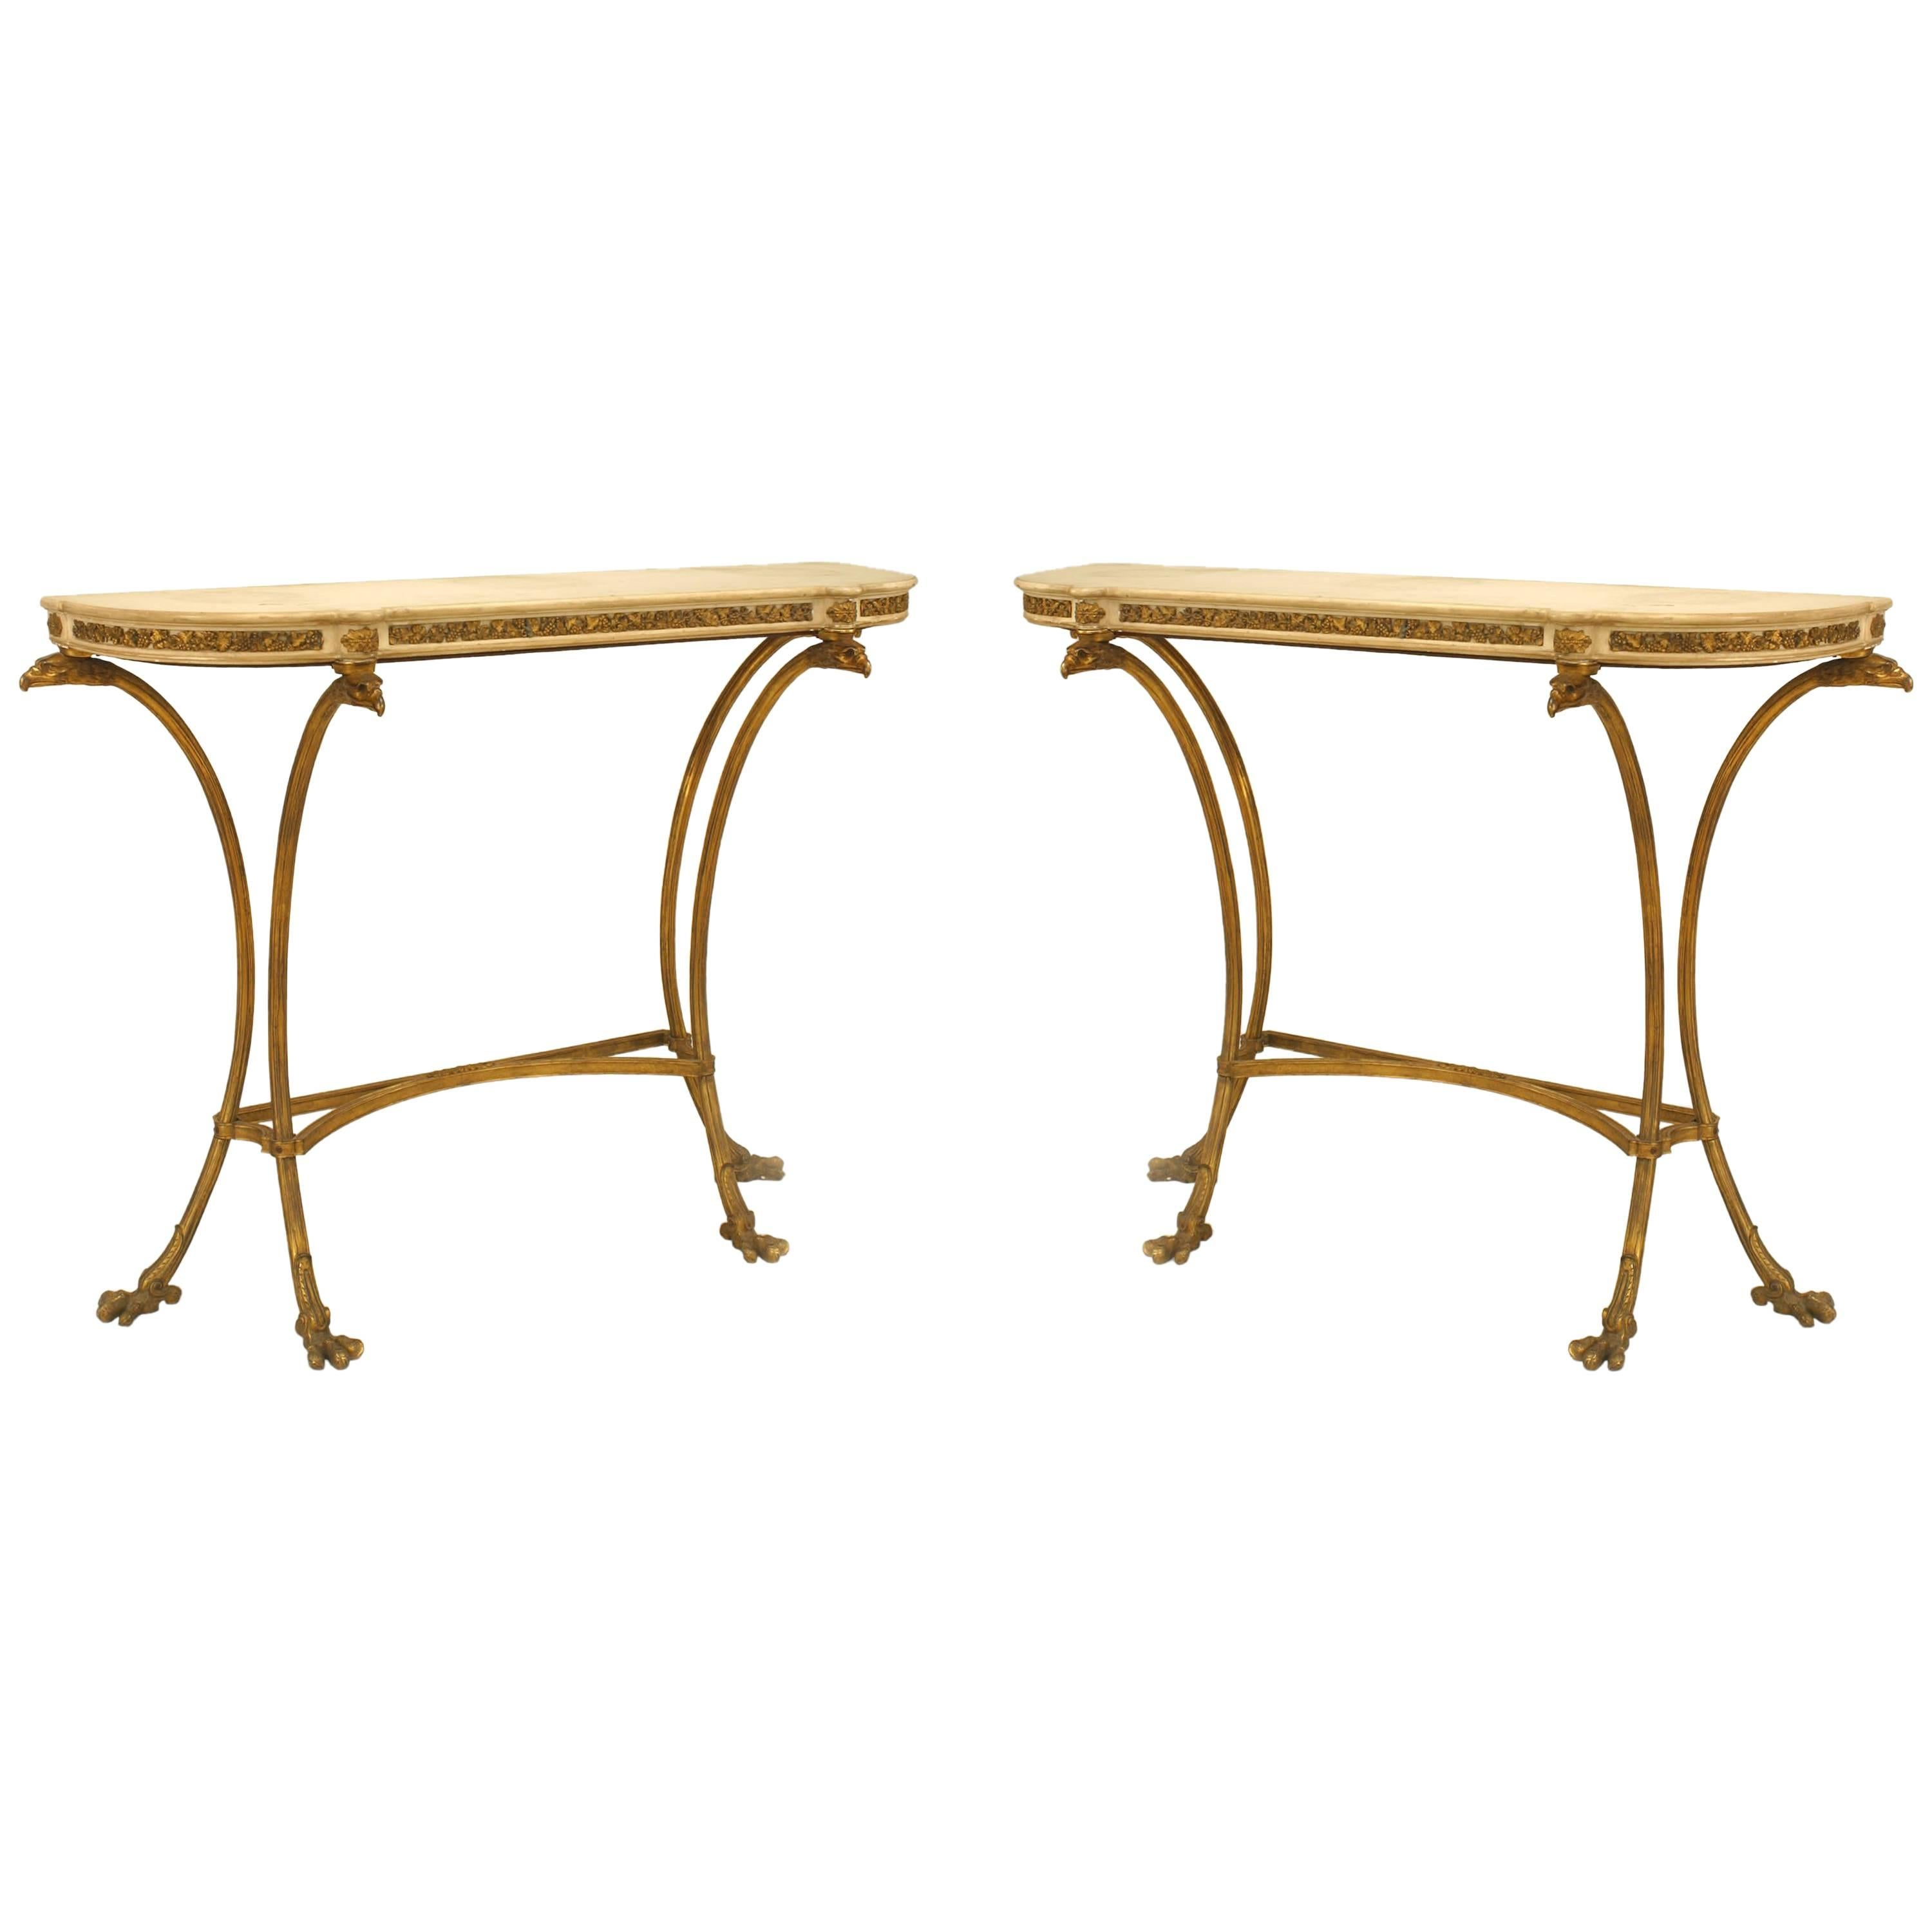 Pair of French Louis XVI Style Bronze Doré Console Tables